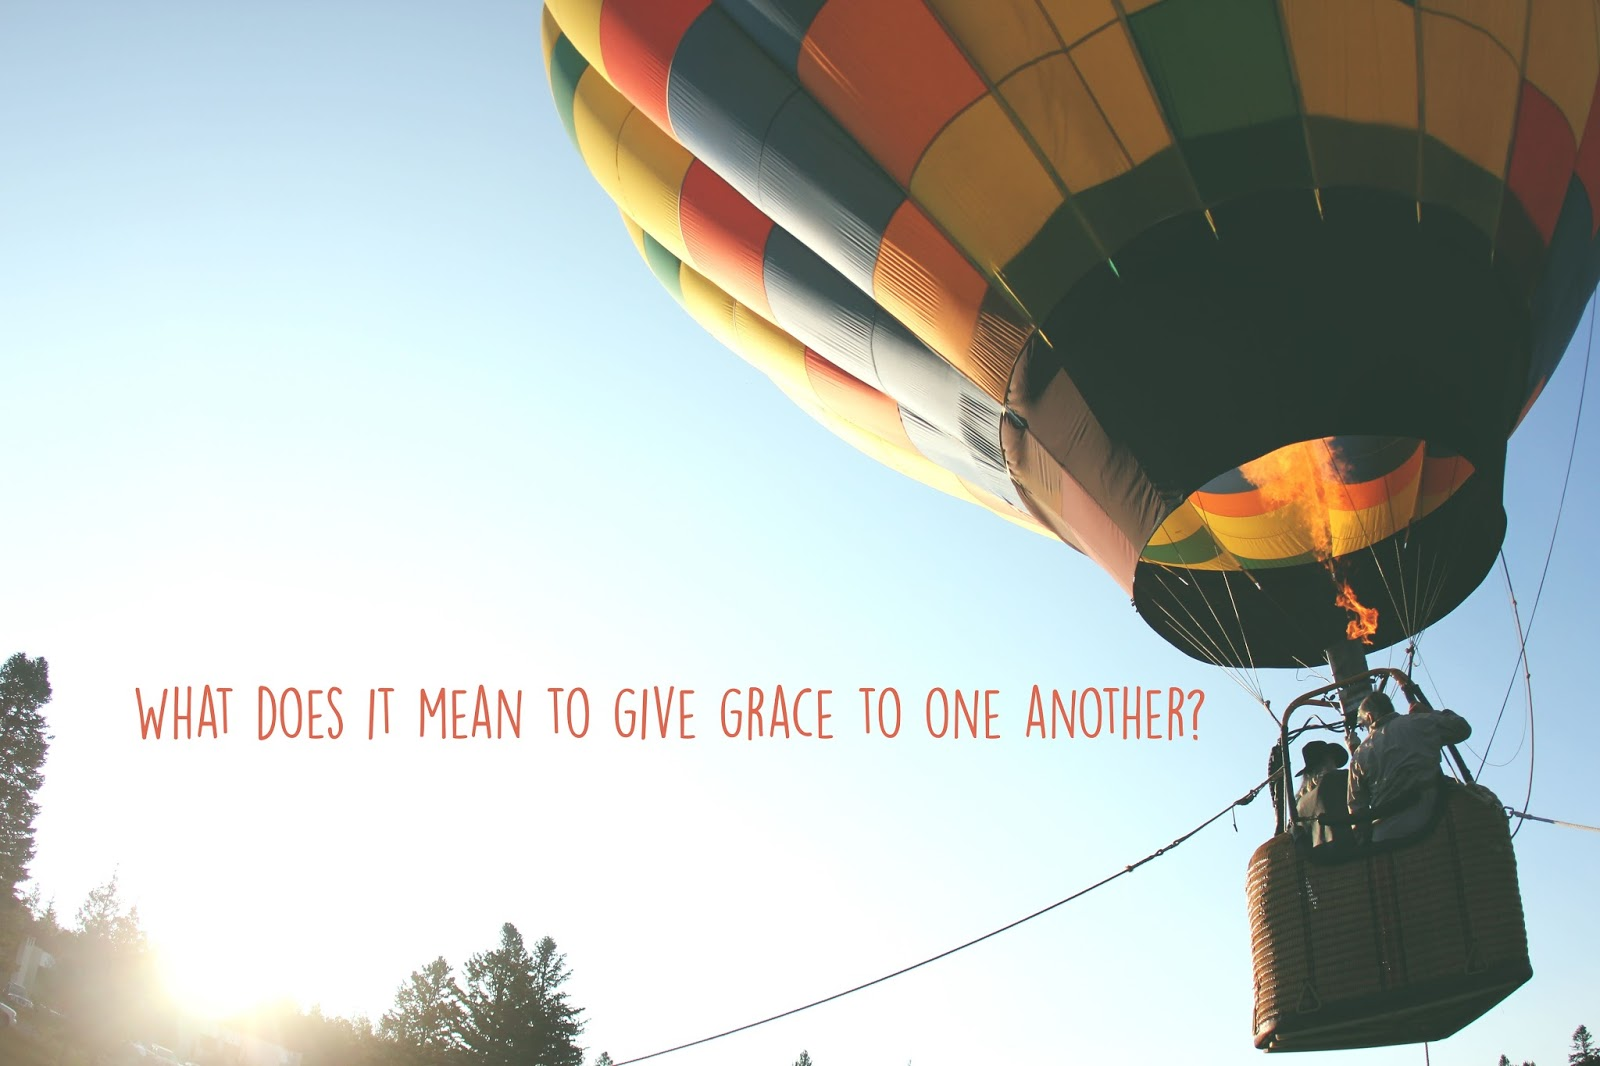 Grace Covers Me: What Does It Mean to Give Grace To One Another?